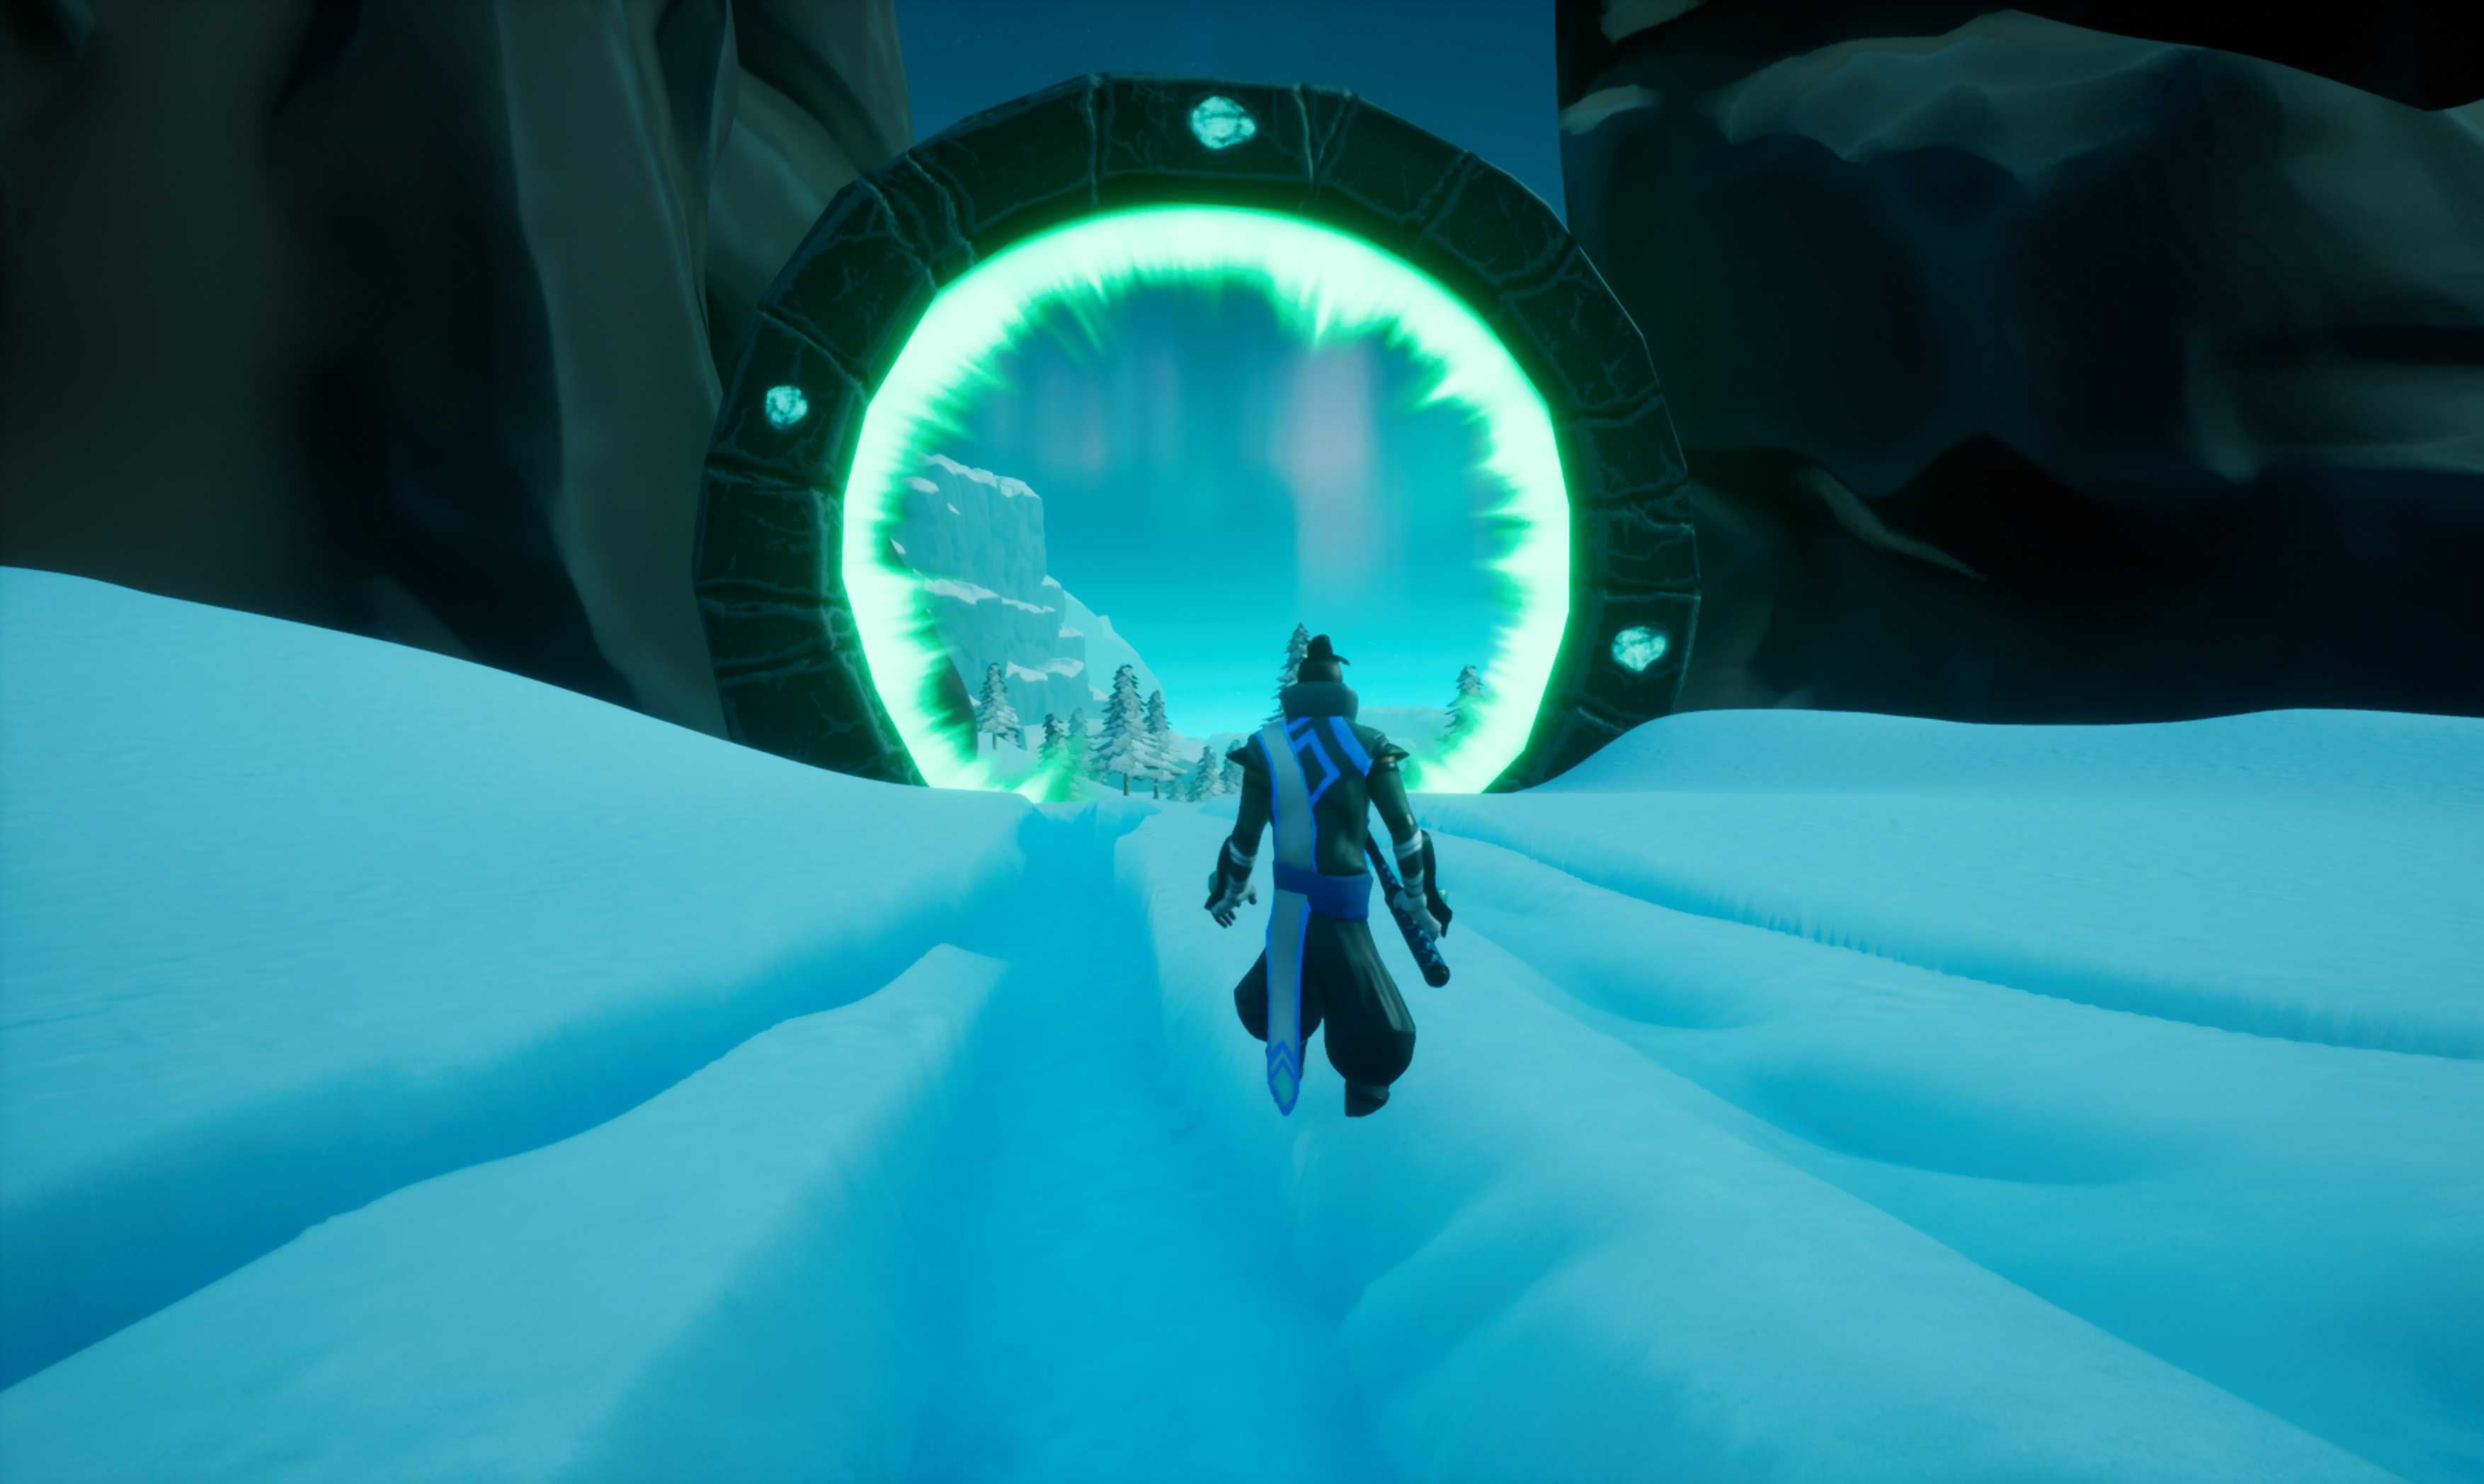 As a player you can go through portals that give you a speed boost when snowboarding.